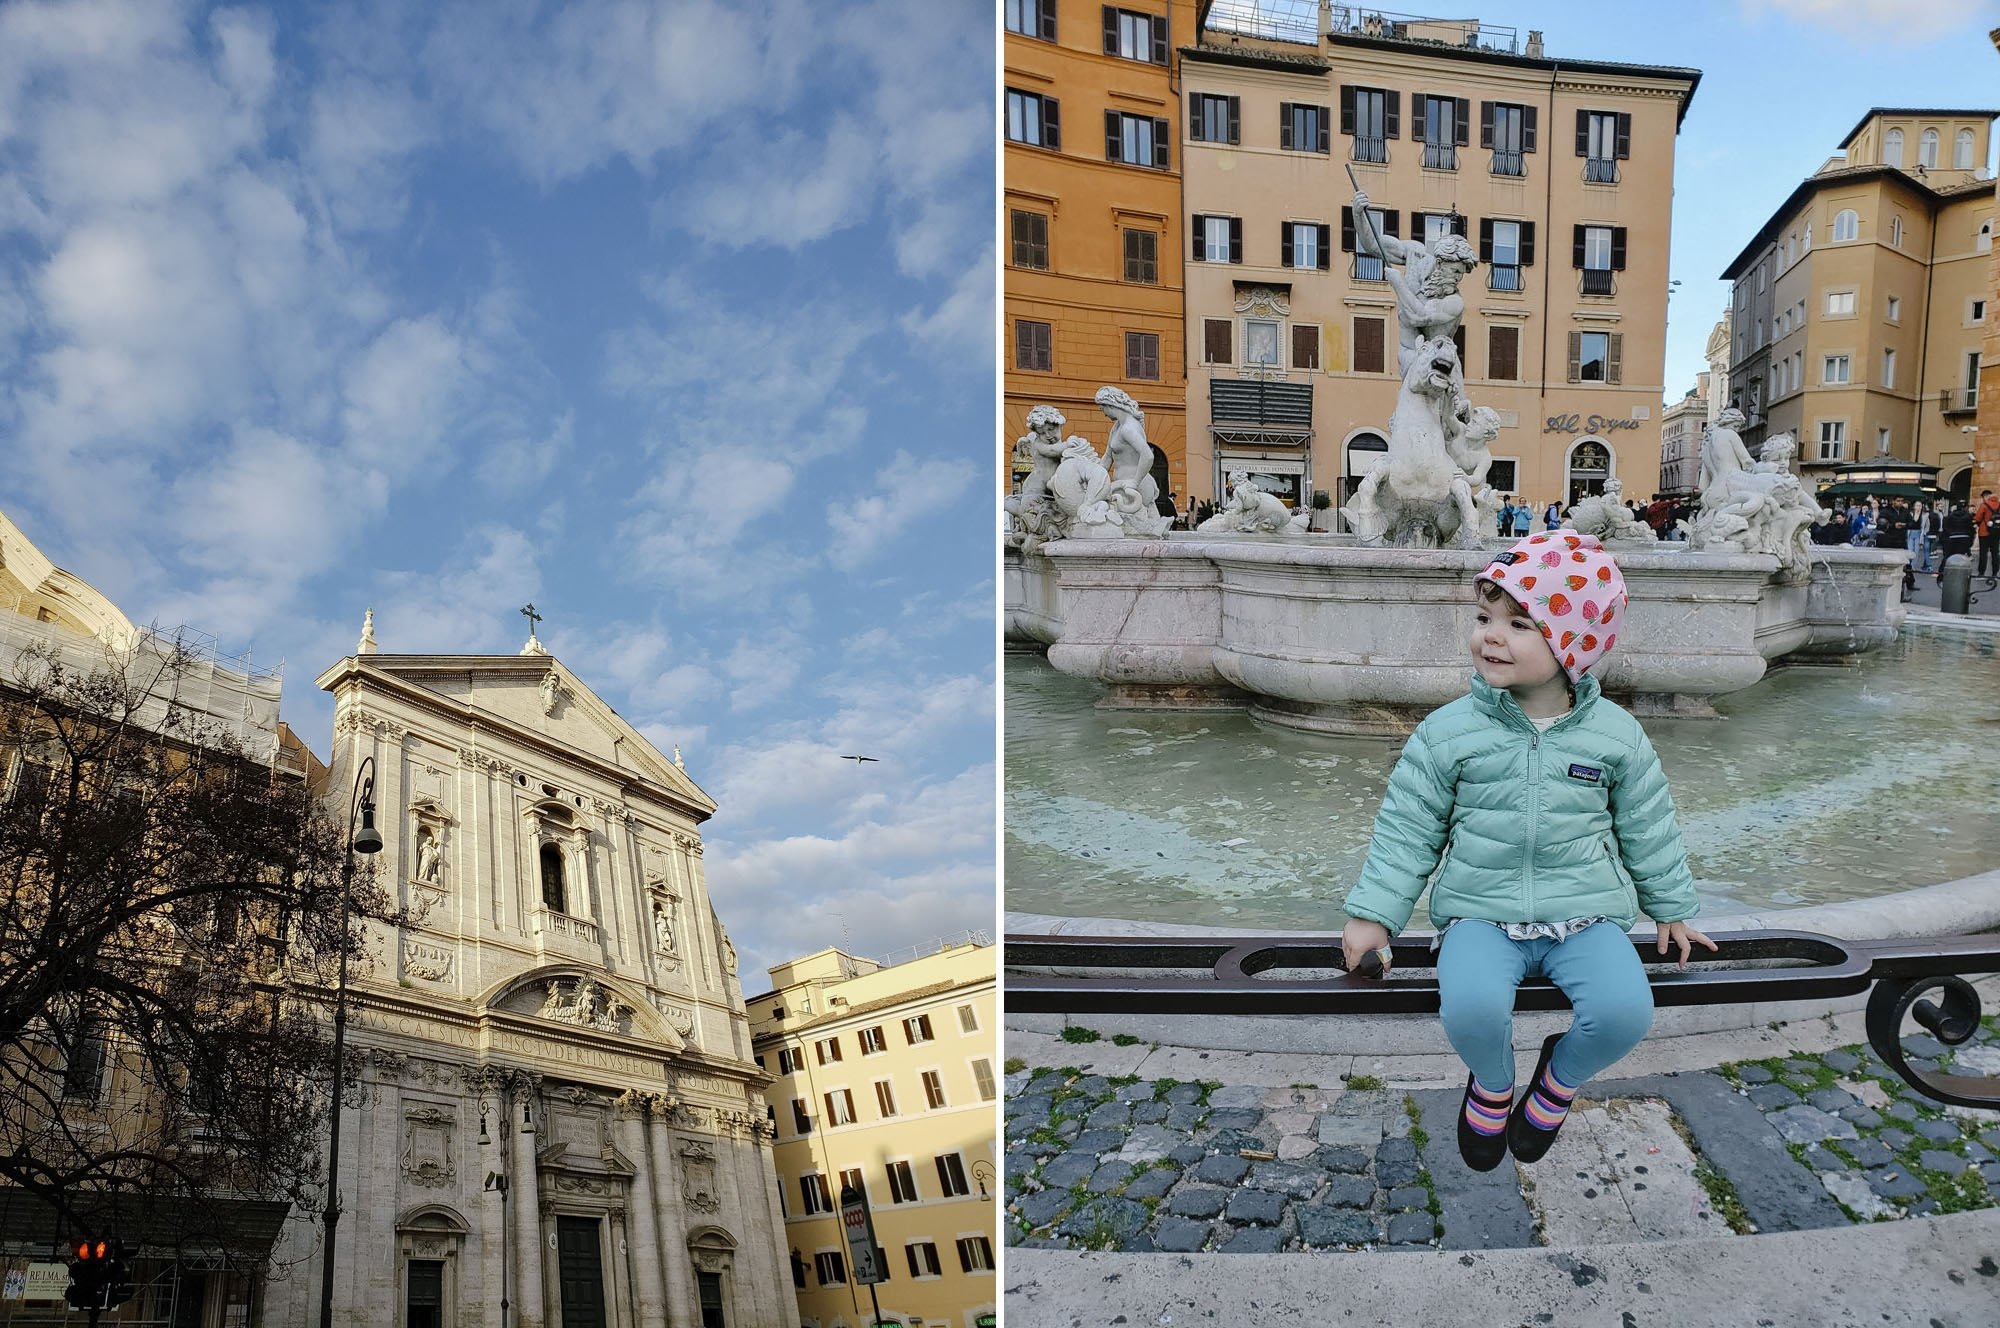 Rome Churches and Fountains with a Toddler